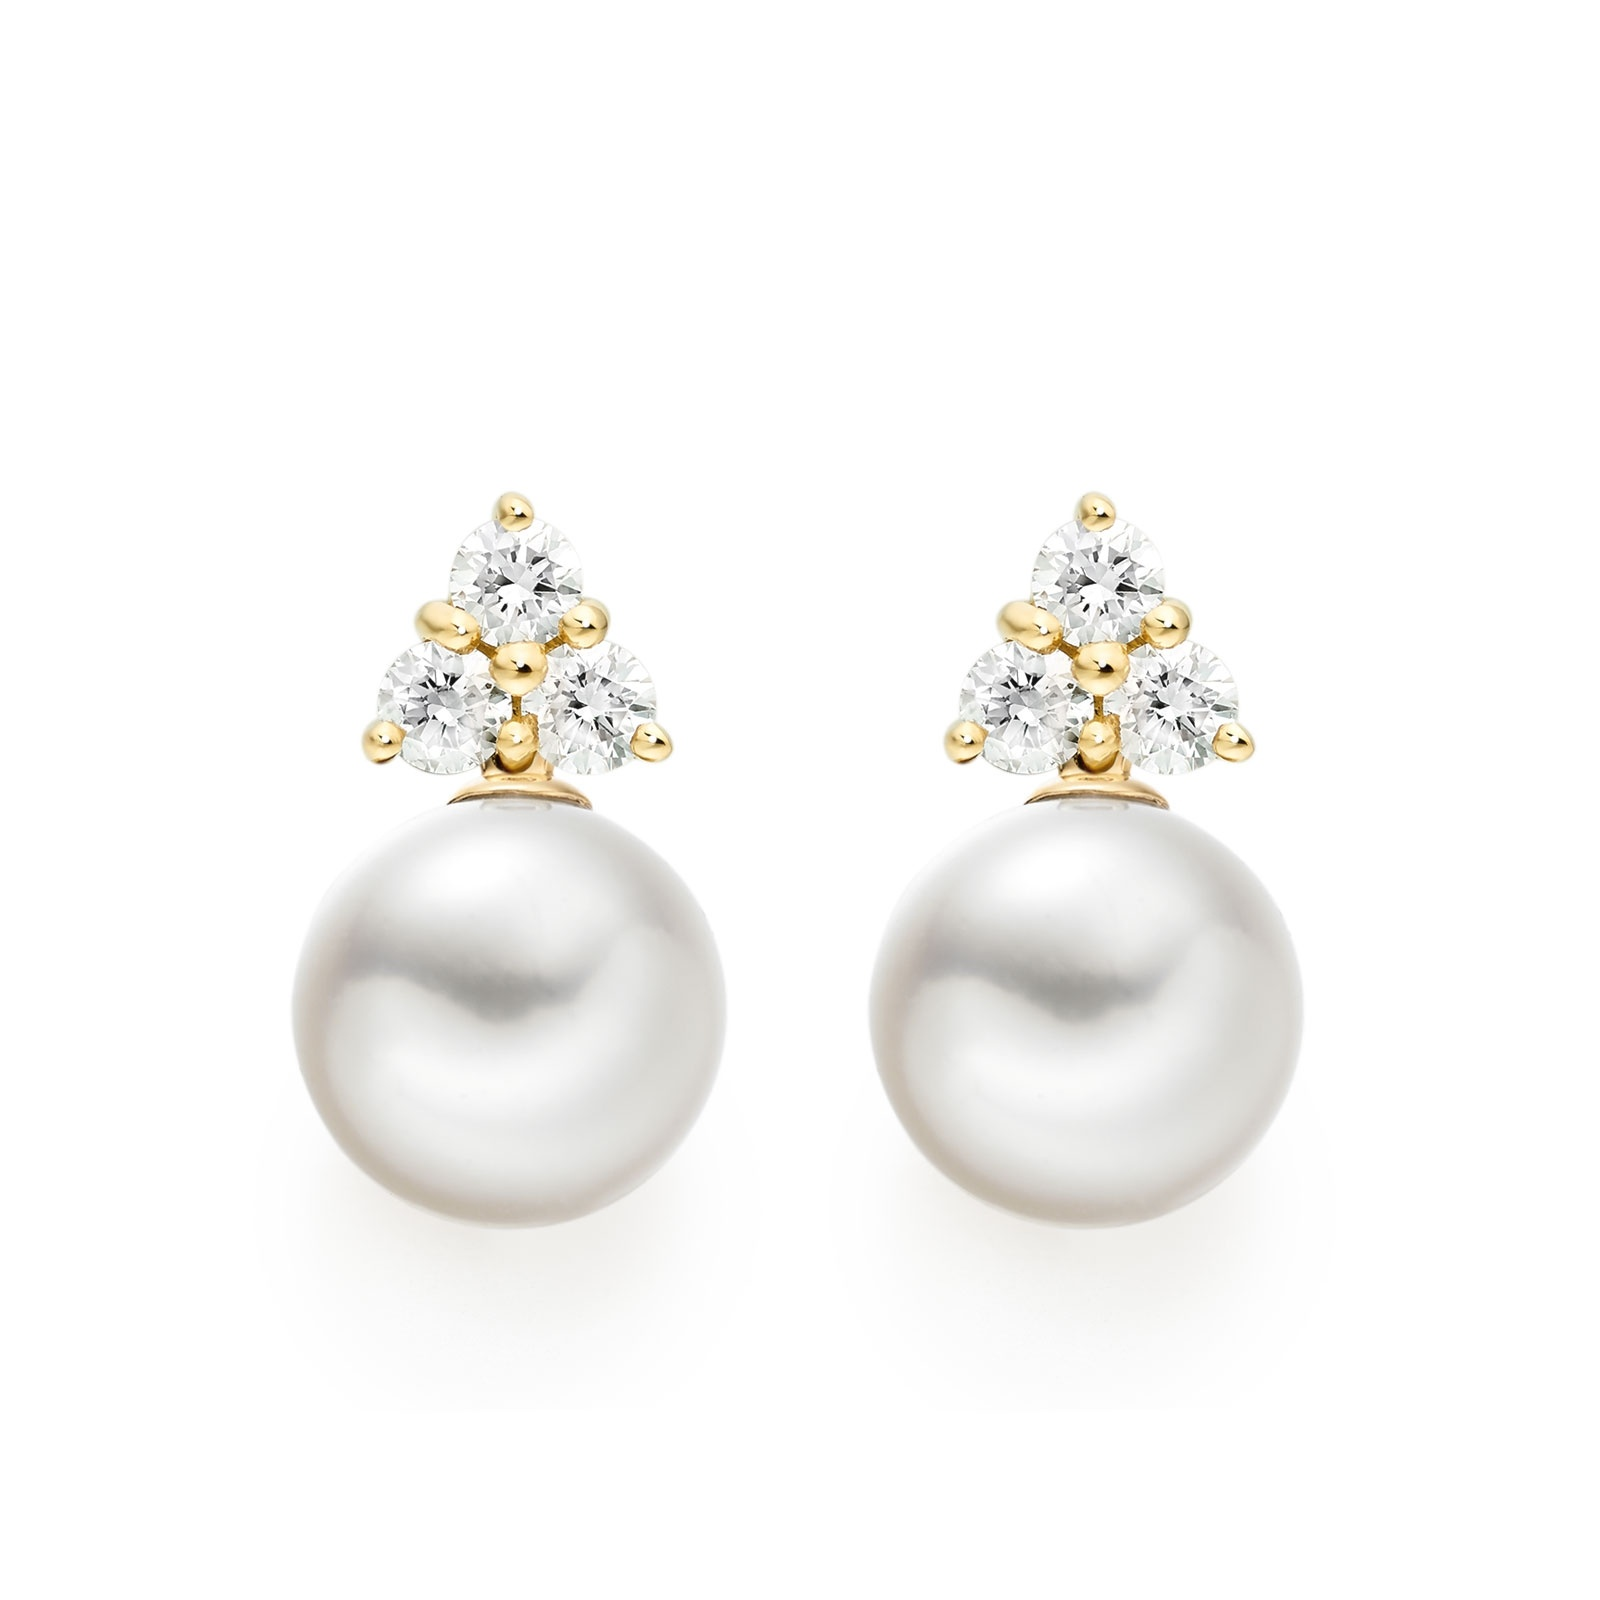 Astral Cluster Studs in Yellow Gold with Akoya Pearls-AEWRYG1338-1